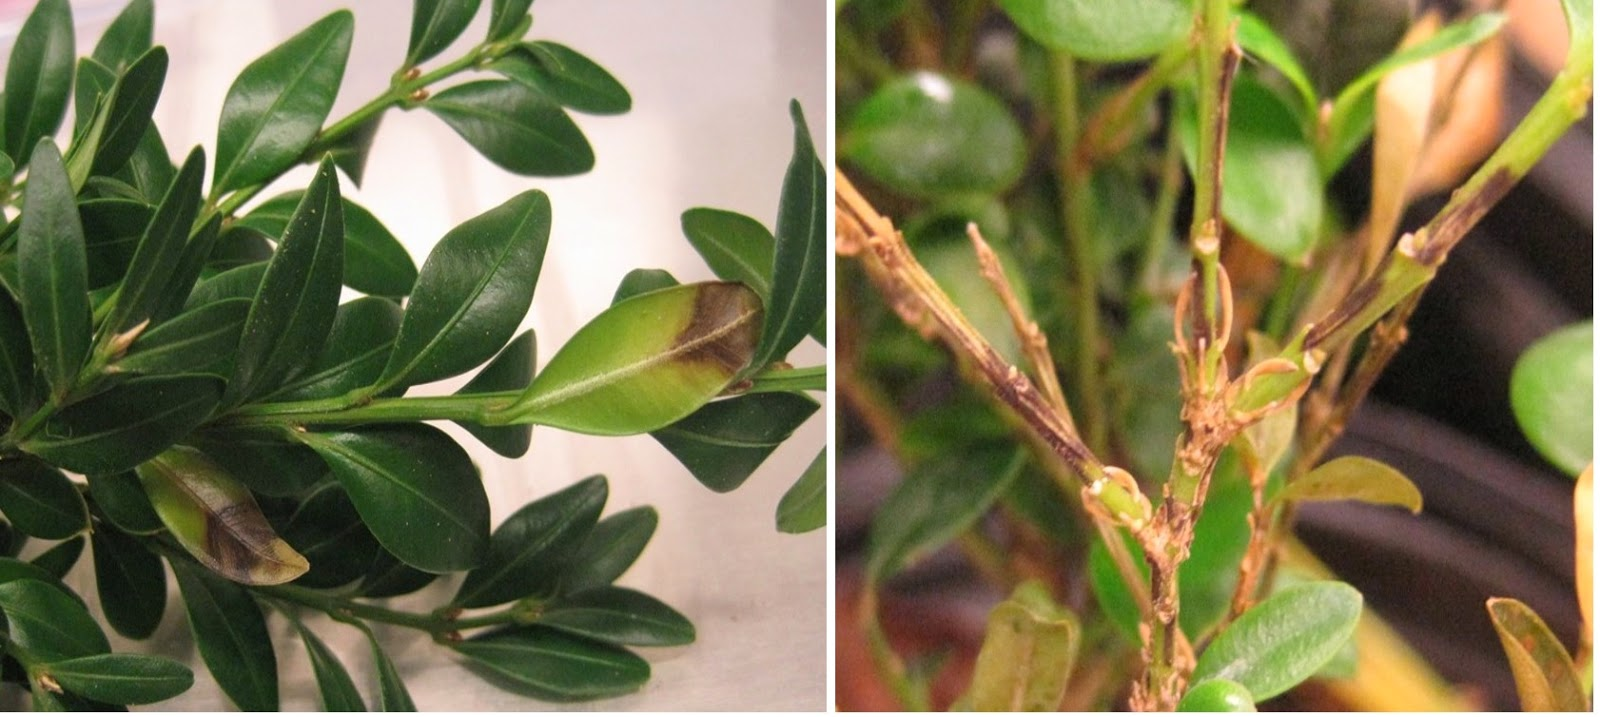 dark leaf spots and dark stem streaks, as well as leaf loss, are typical symptoms of boxwood blight